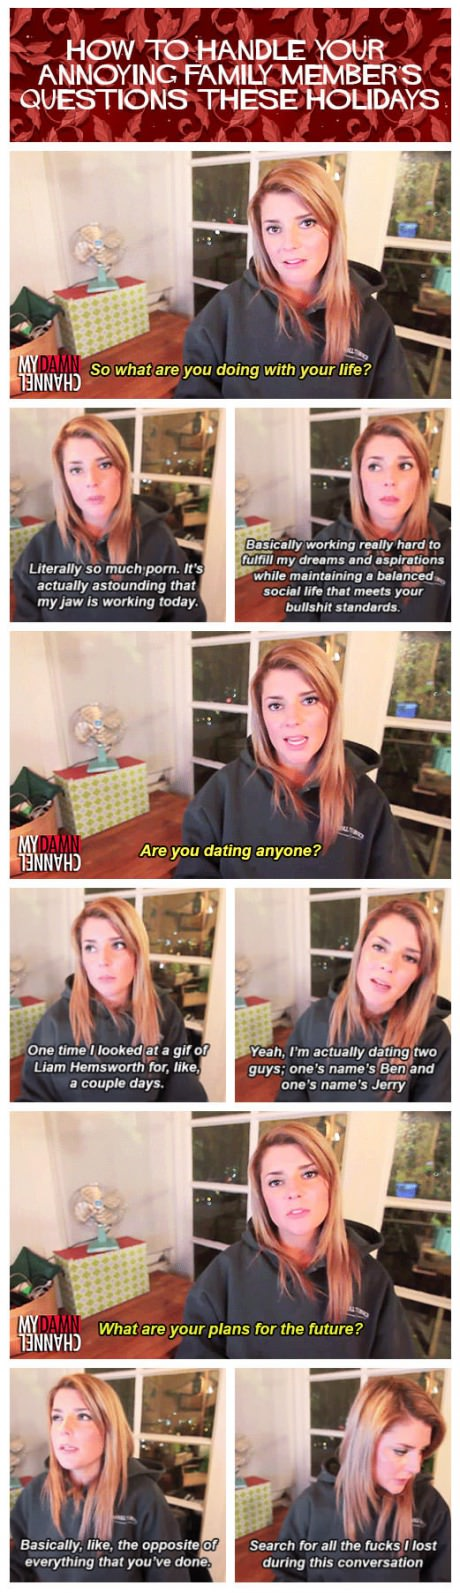 funny-picture-annoying-family-questions